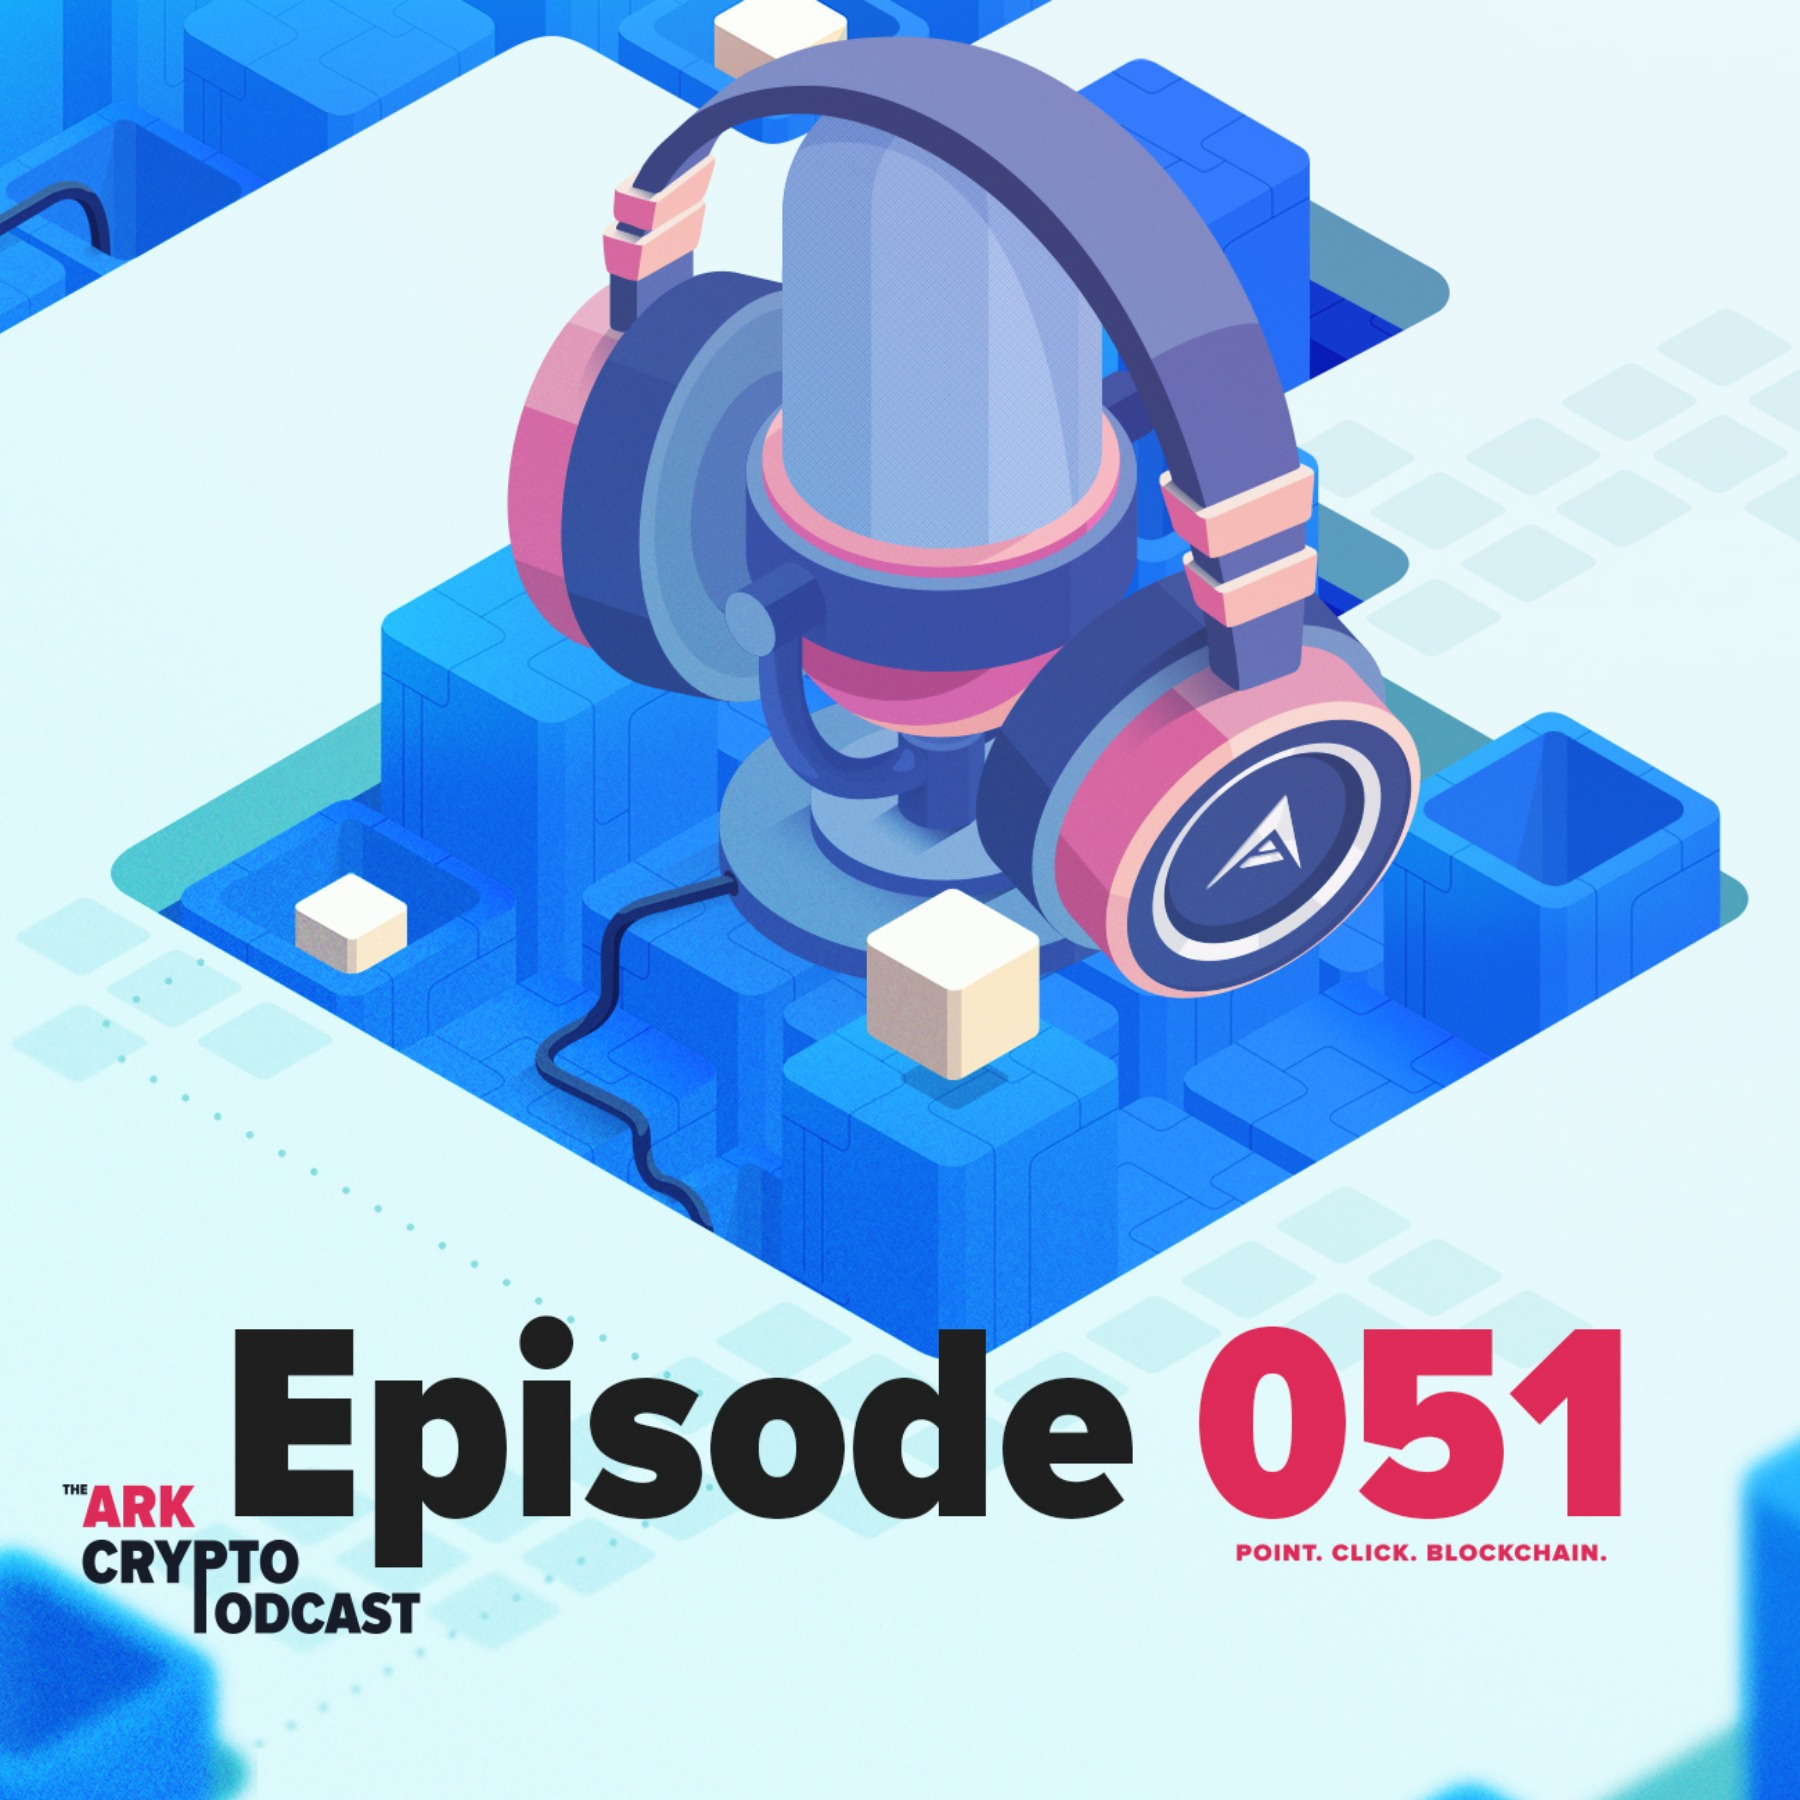 ARK Crypto Podcast #051 - Reasons to be Excited for ARK in the Near Term